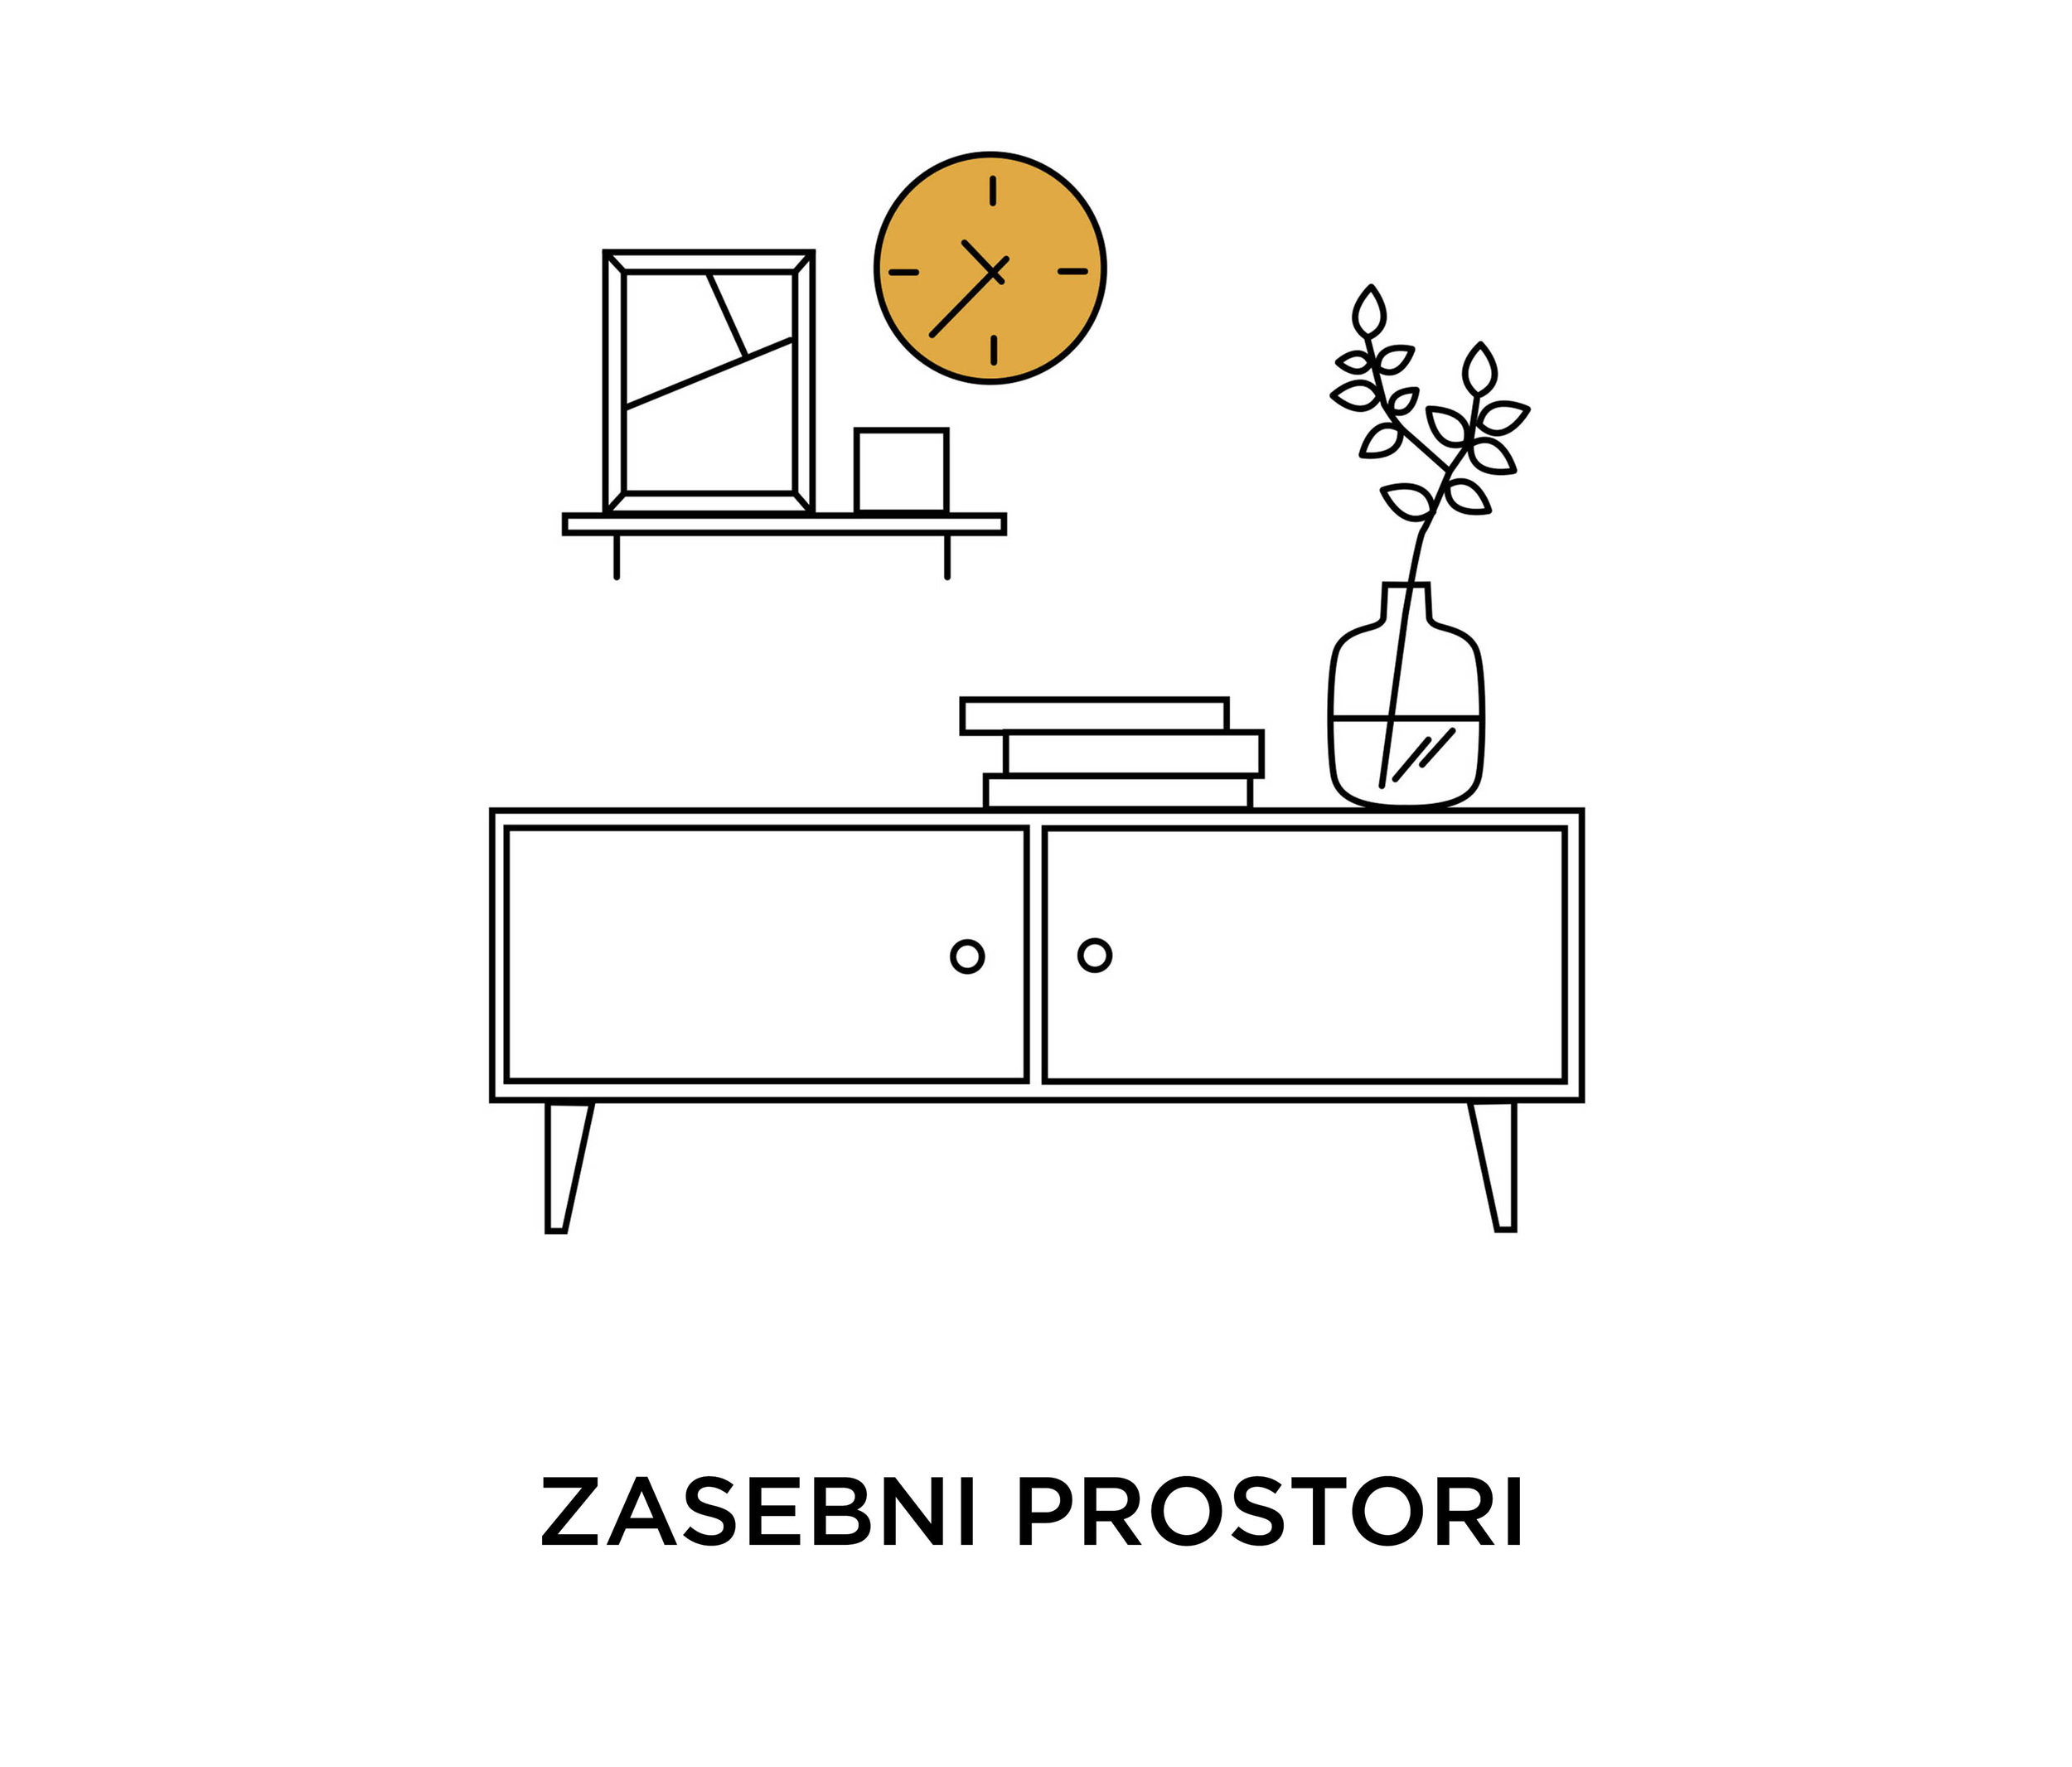 pokestudio_zasebni interierji_2.JPG